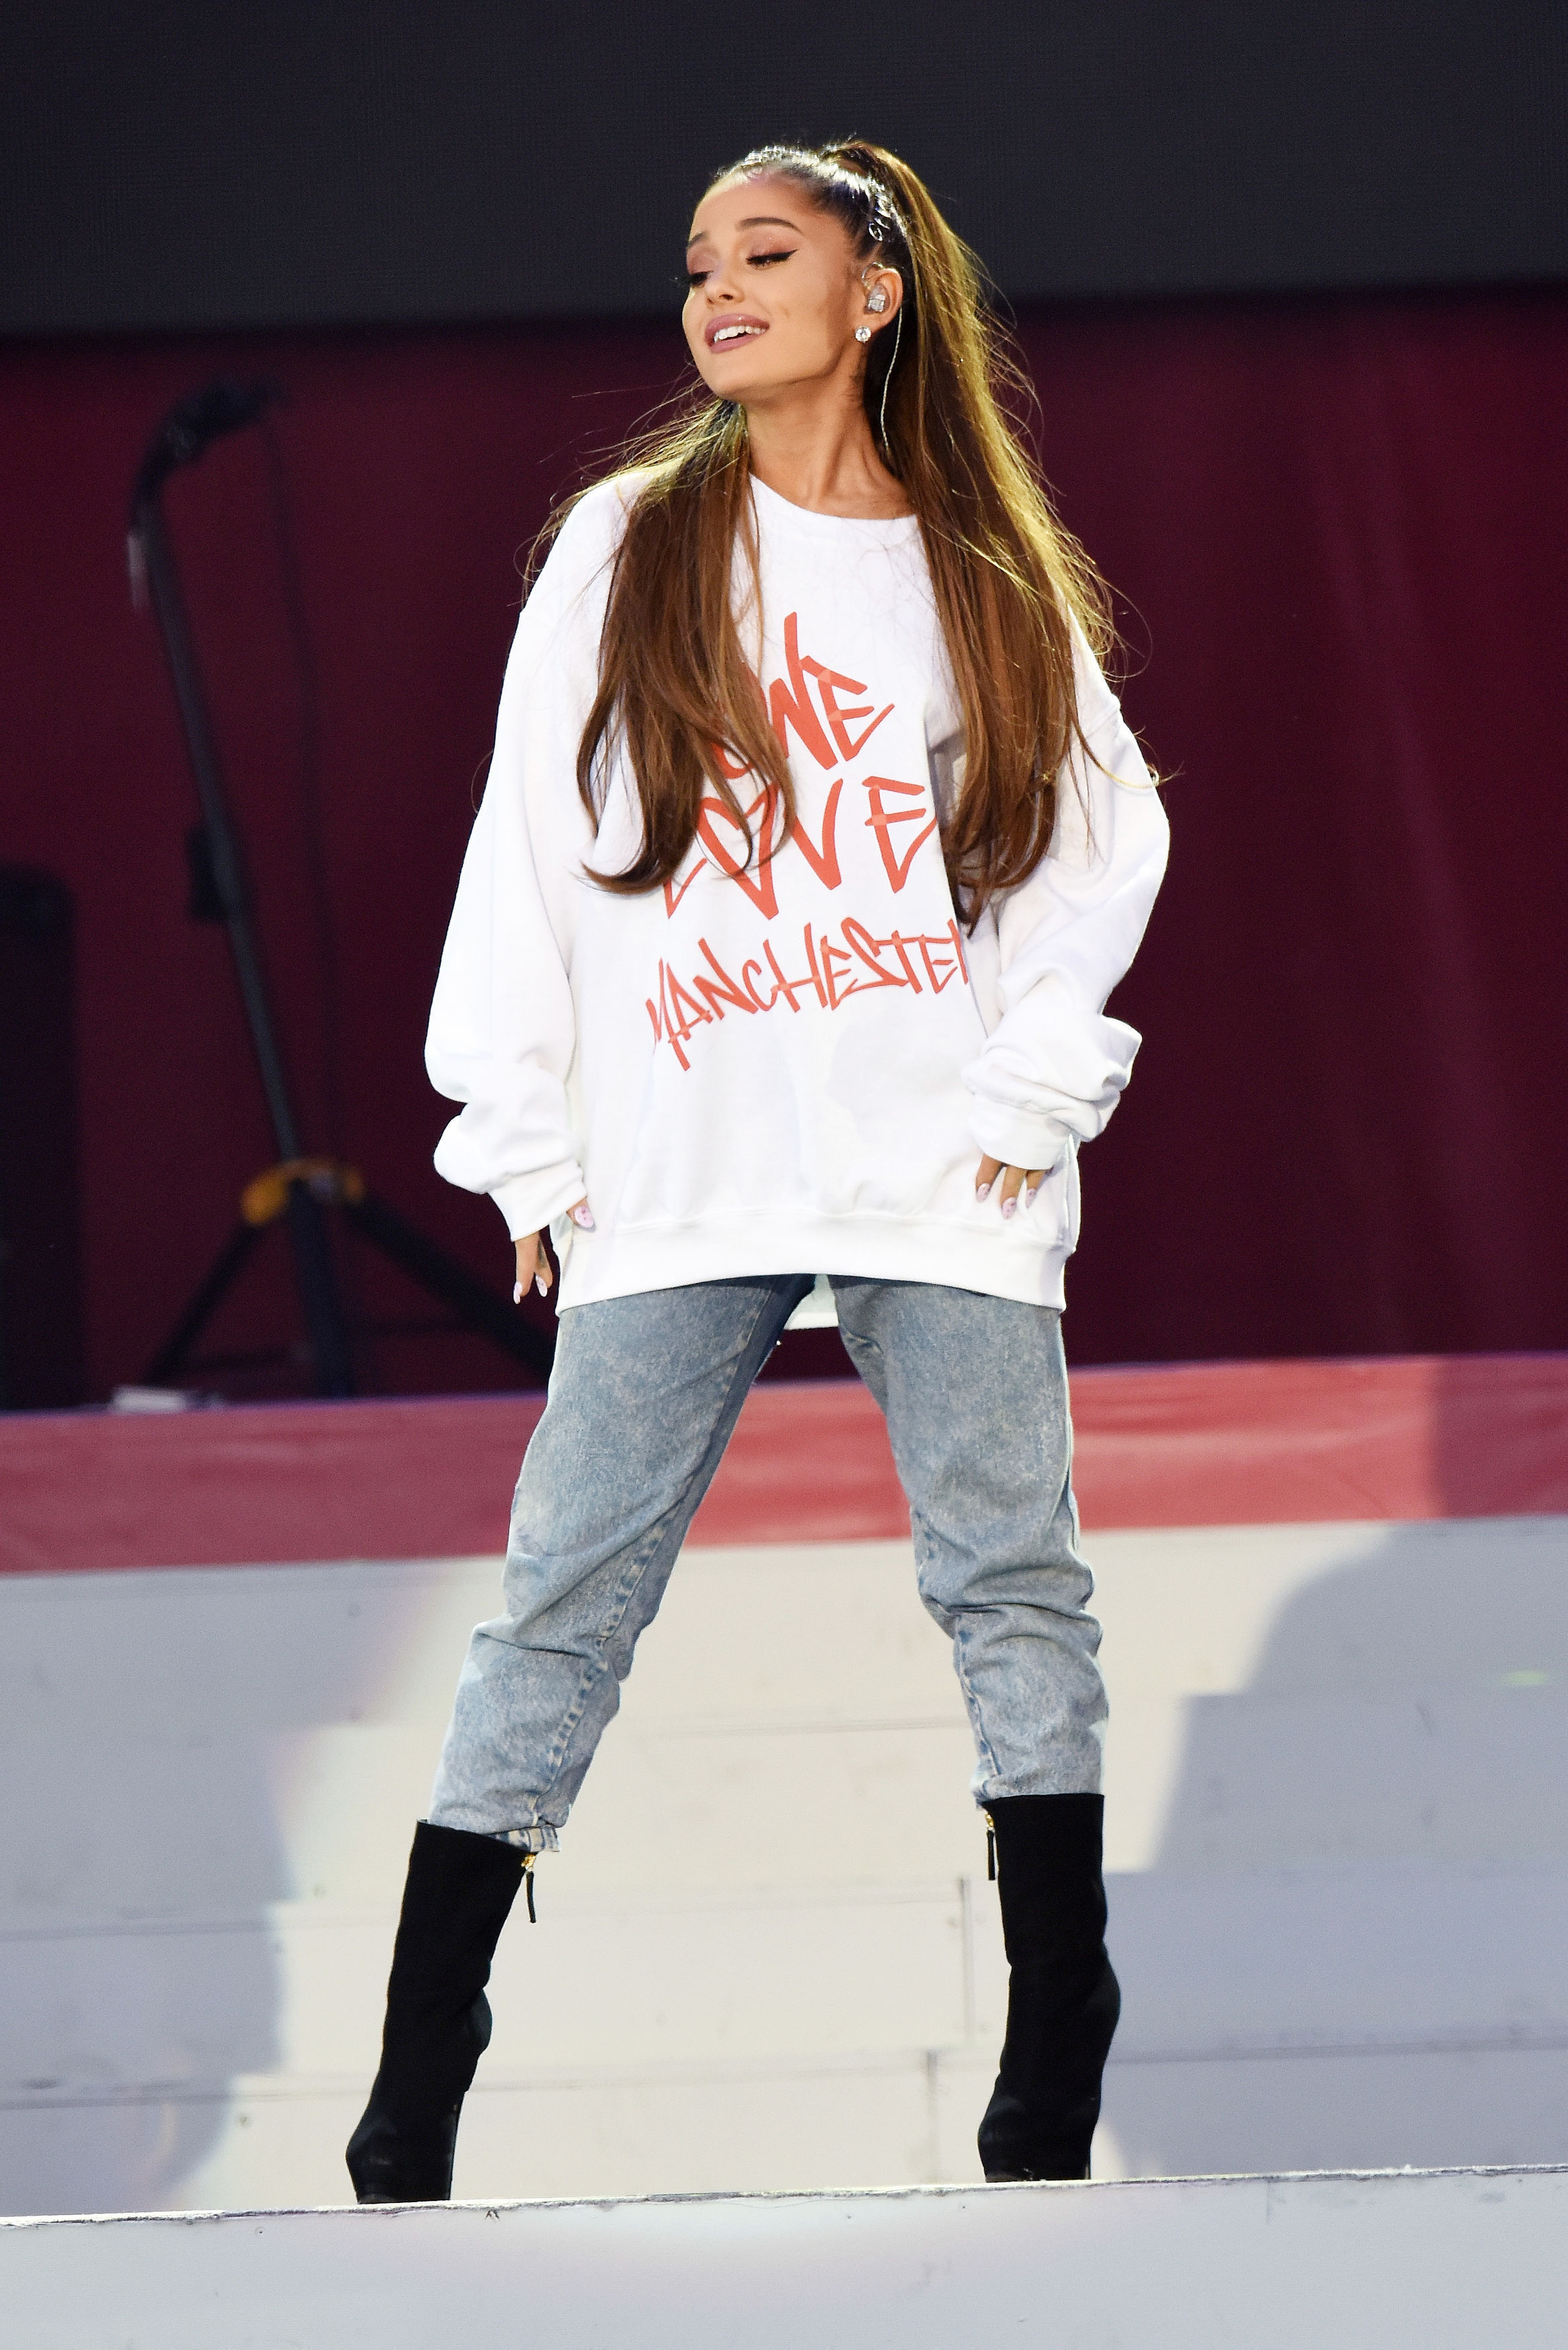 PA File Photo of Ariana Grande performing during the One Love Manchester benefit concert for the victims of the Manchester Arena terror attack in 2017. See PA Feature NOSTALGIA Beauty Long Hair. Picture credit should read: Dave Hogan/PA Photos. WARNING: